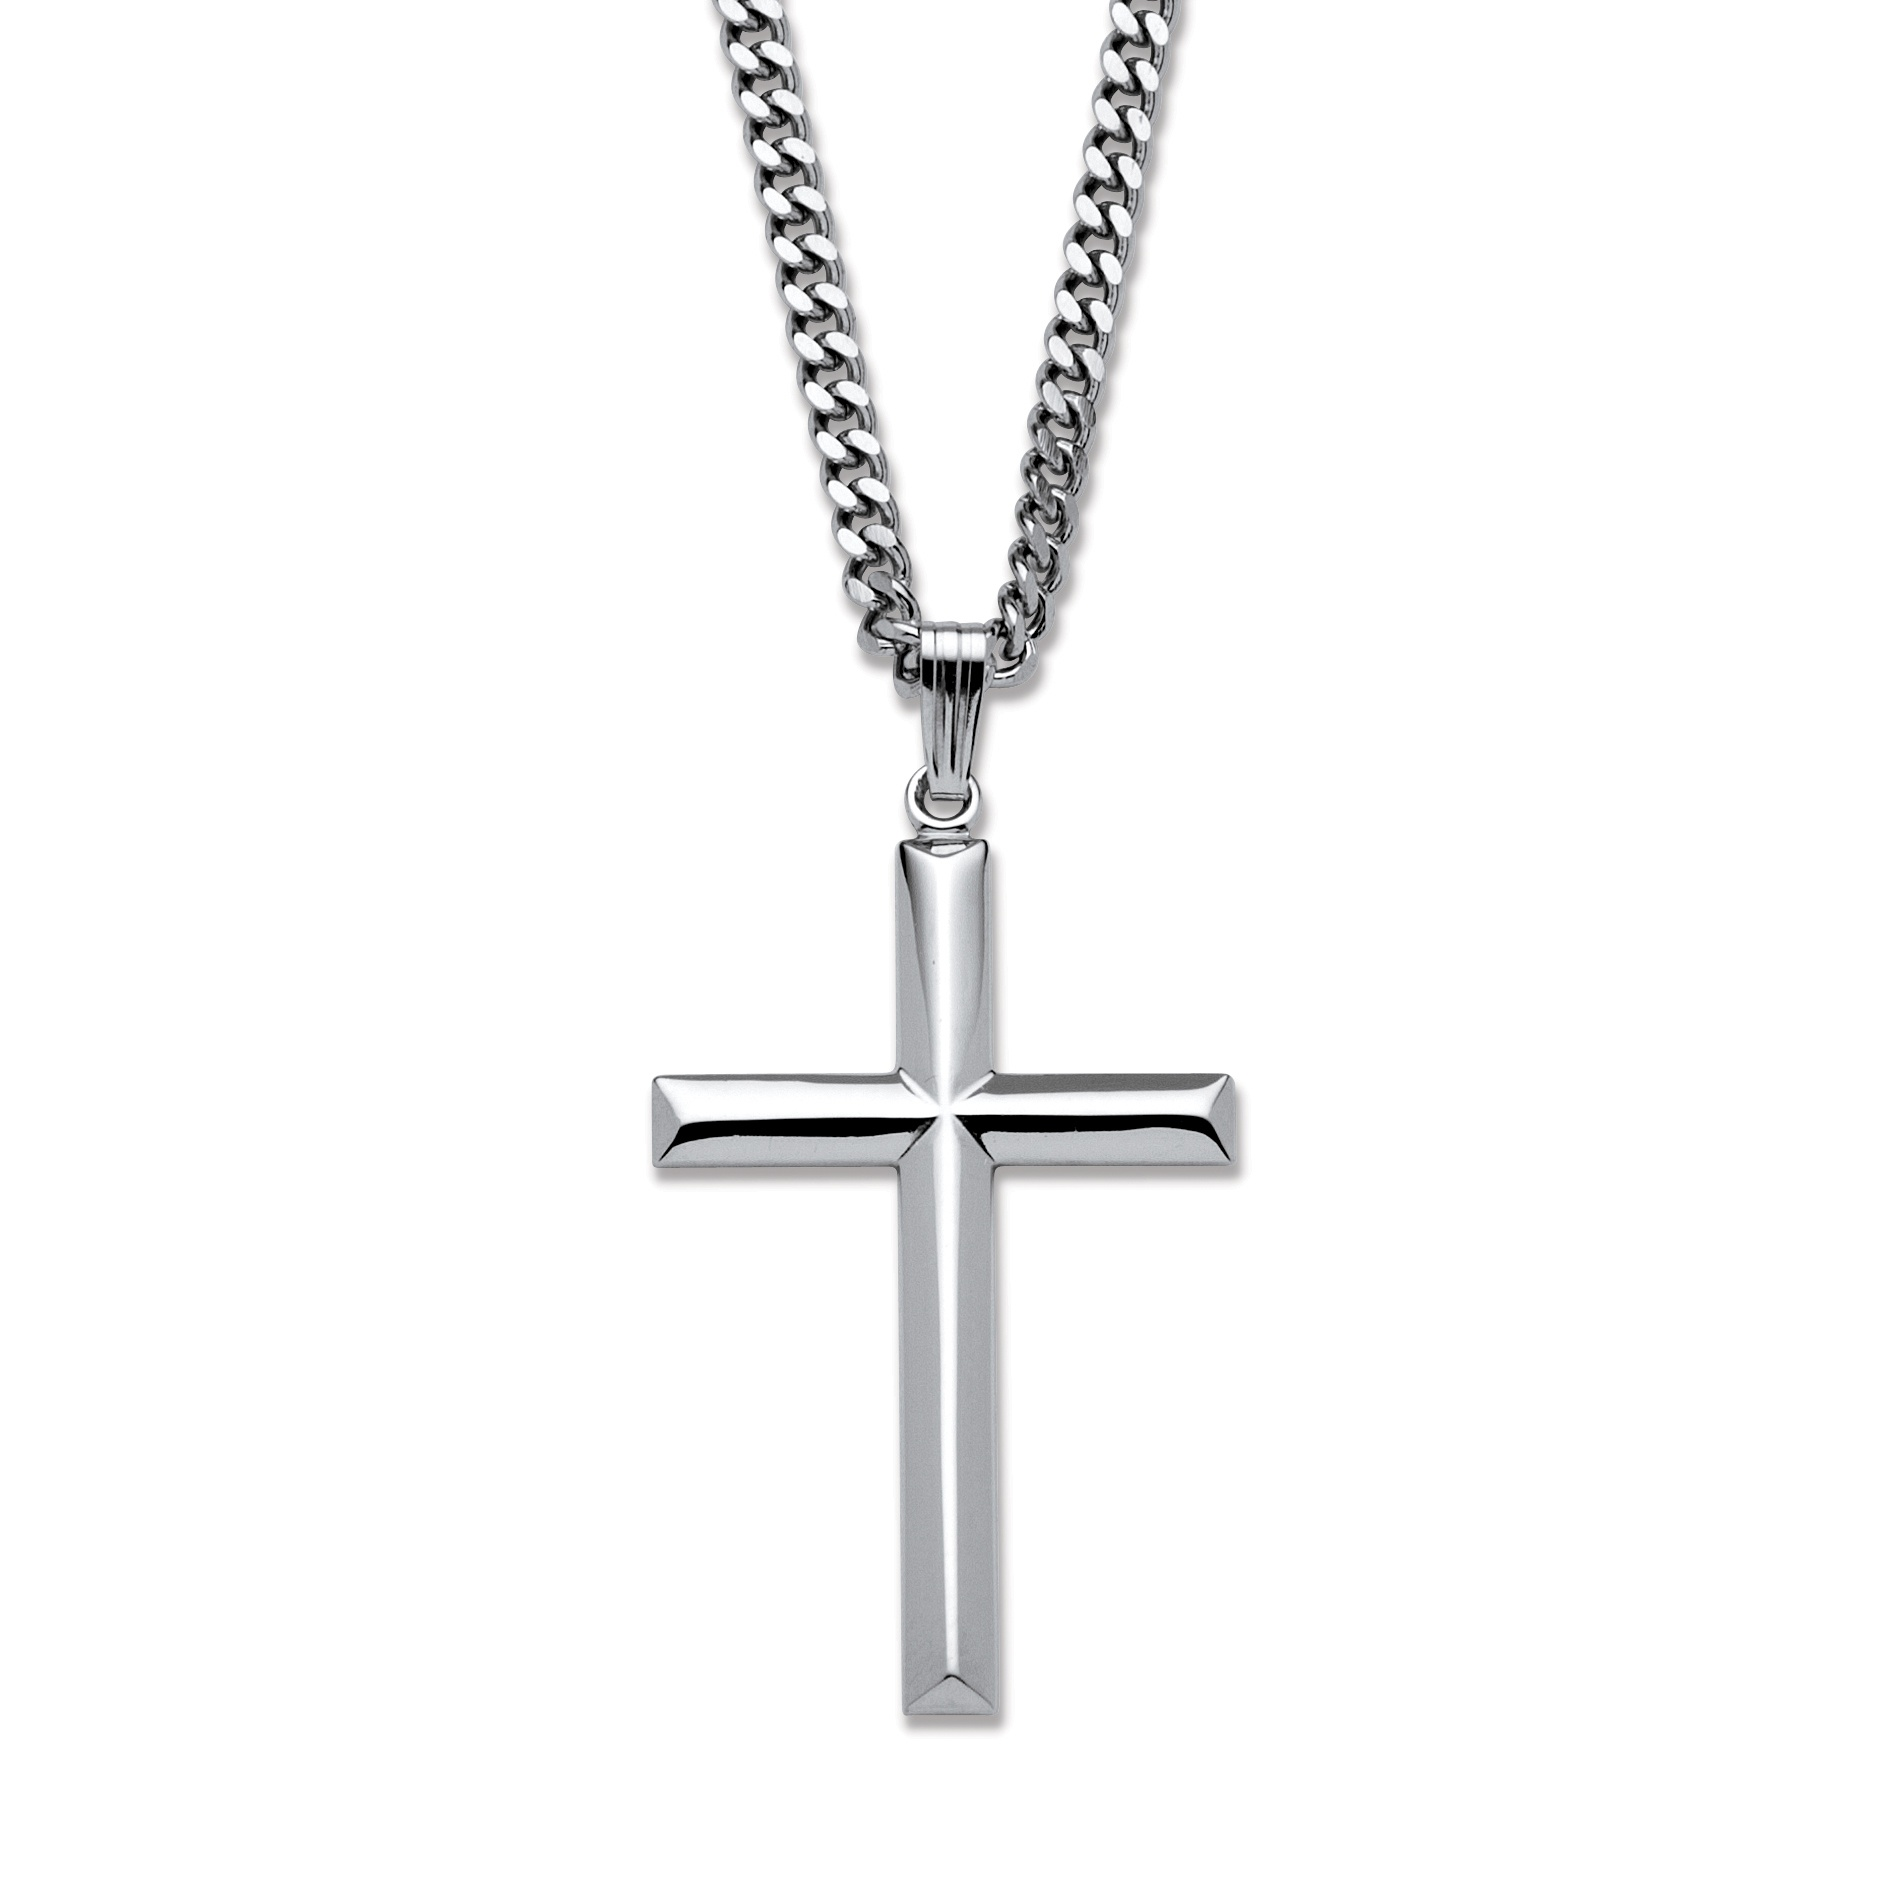 Cross pendant in sterling silver with stainless steel chain 24 at cross pendant in sterling silver with stainless steel chain 24 at palmbeach jewelry aloadofball